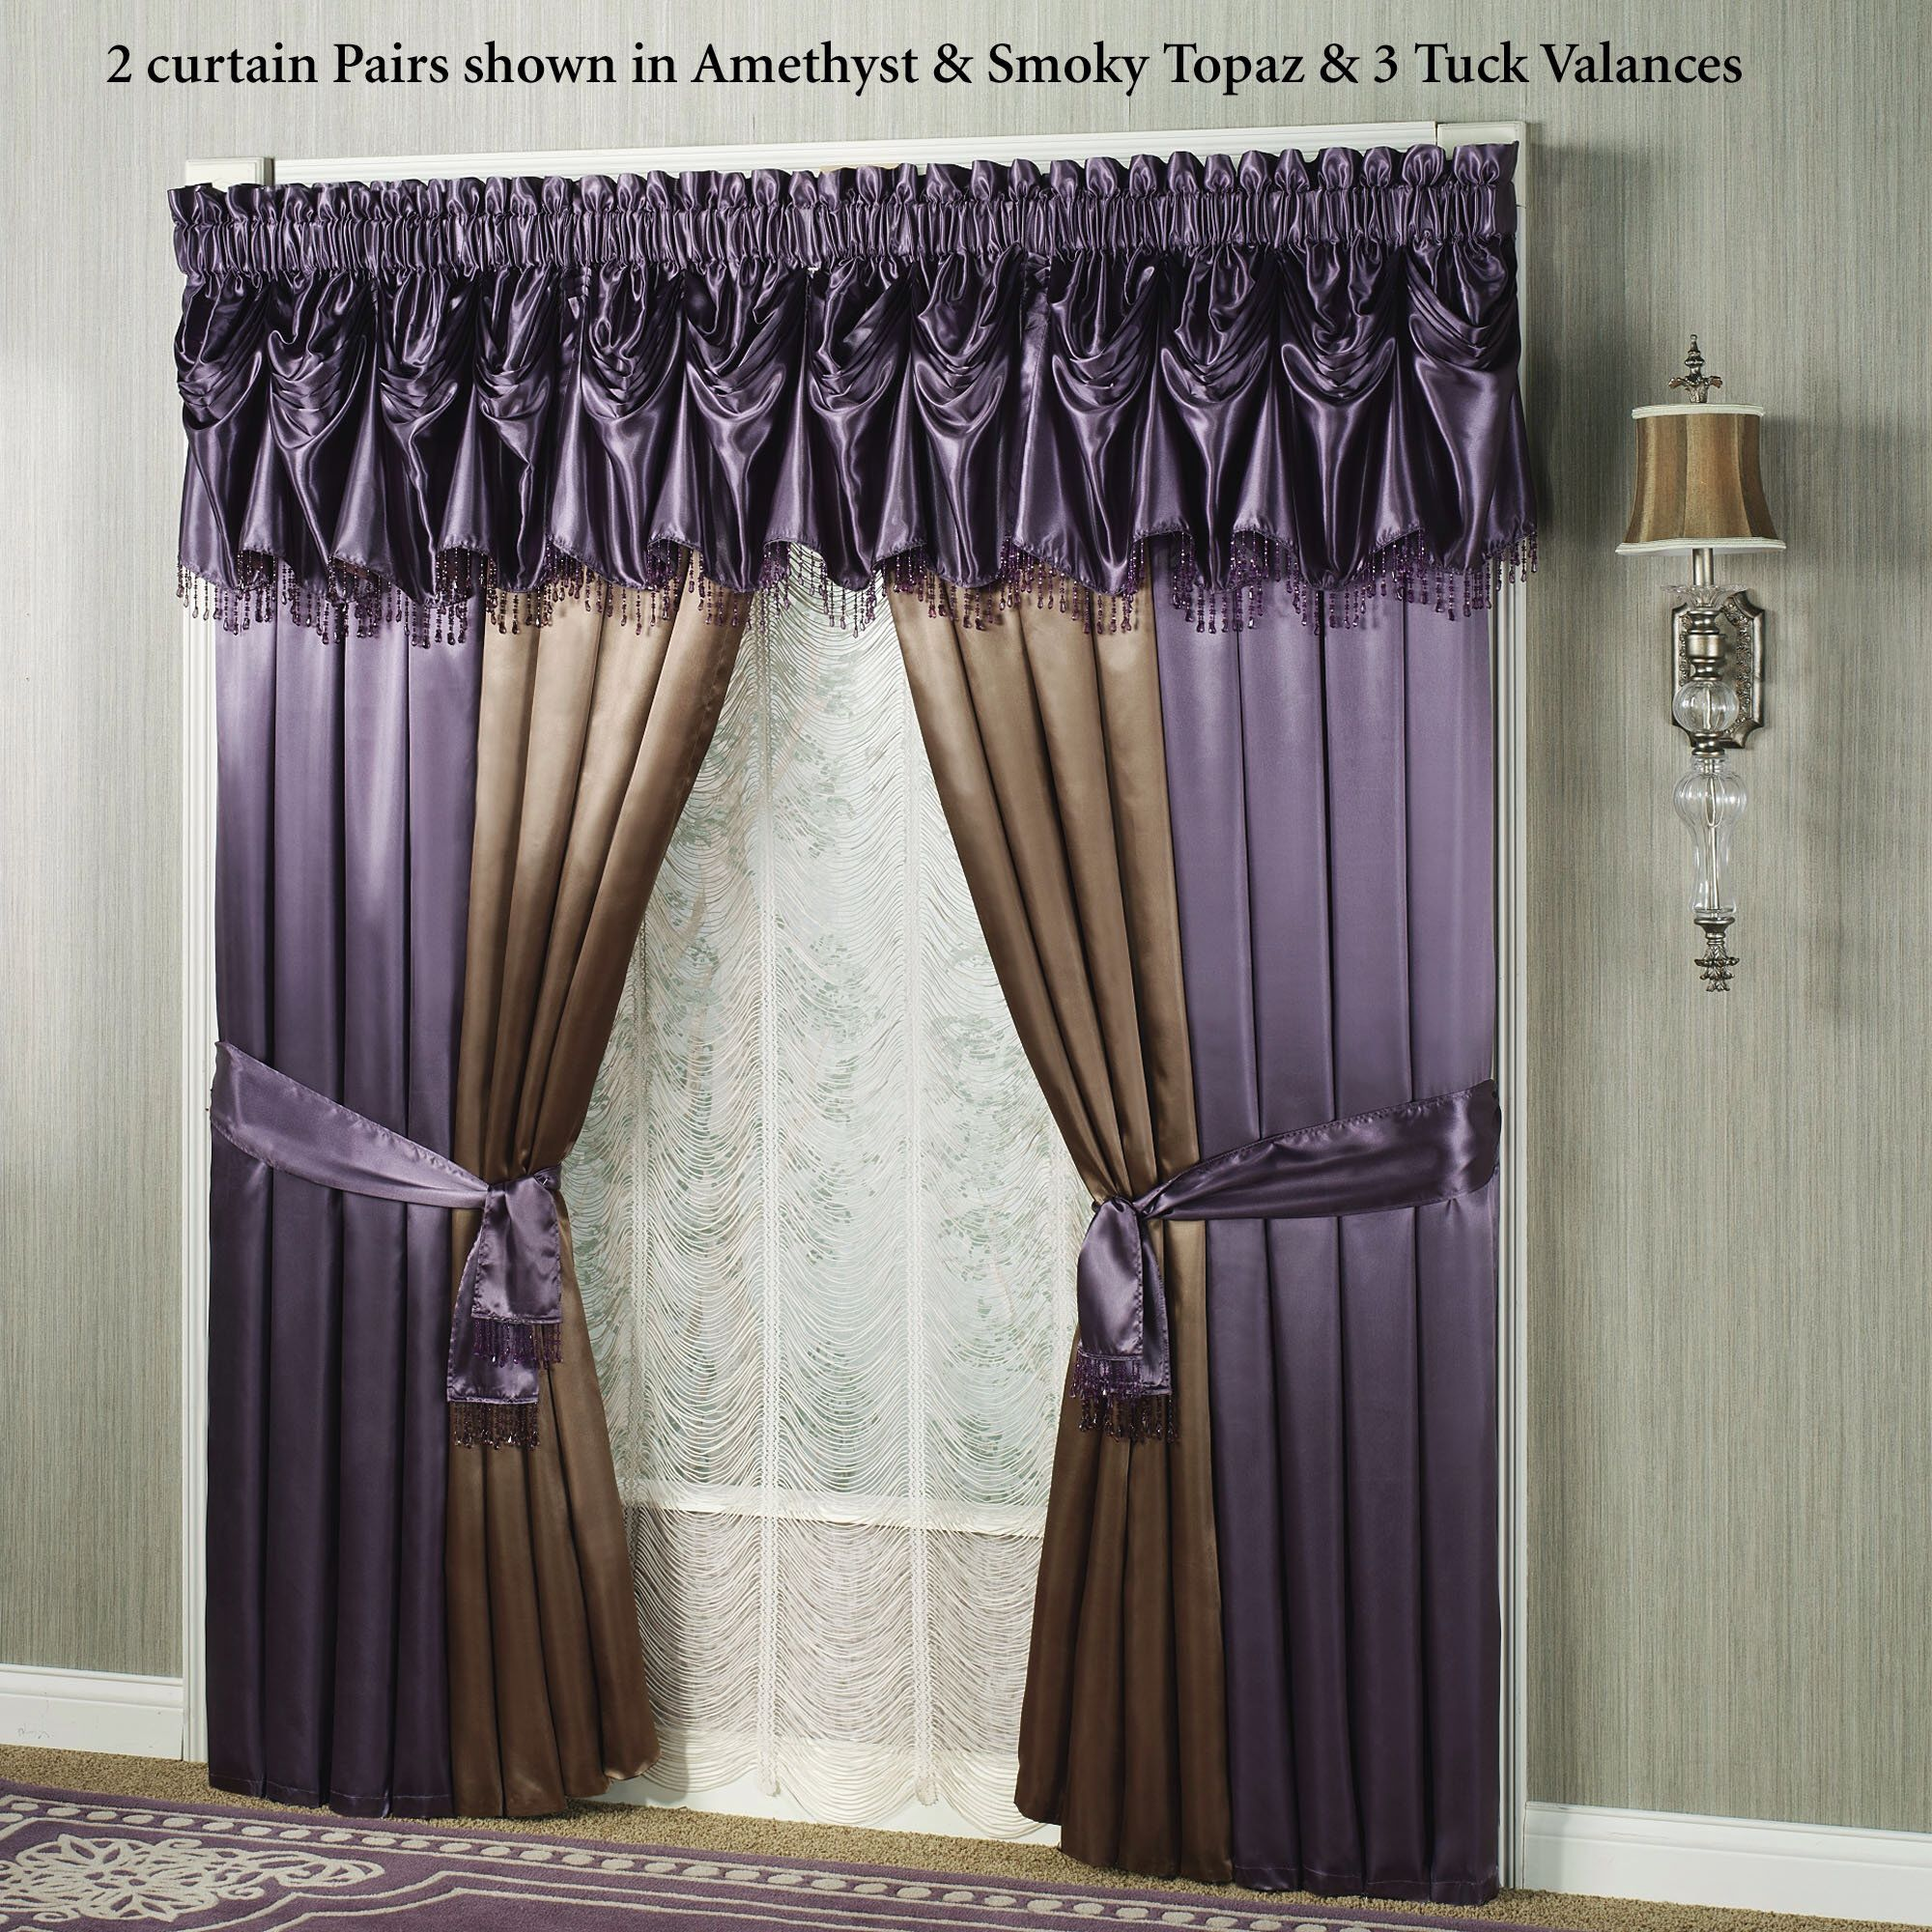 Curtains with Sashes